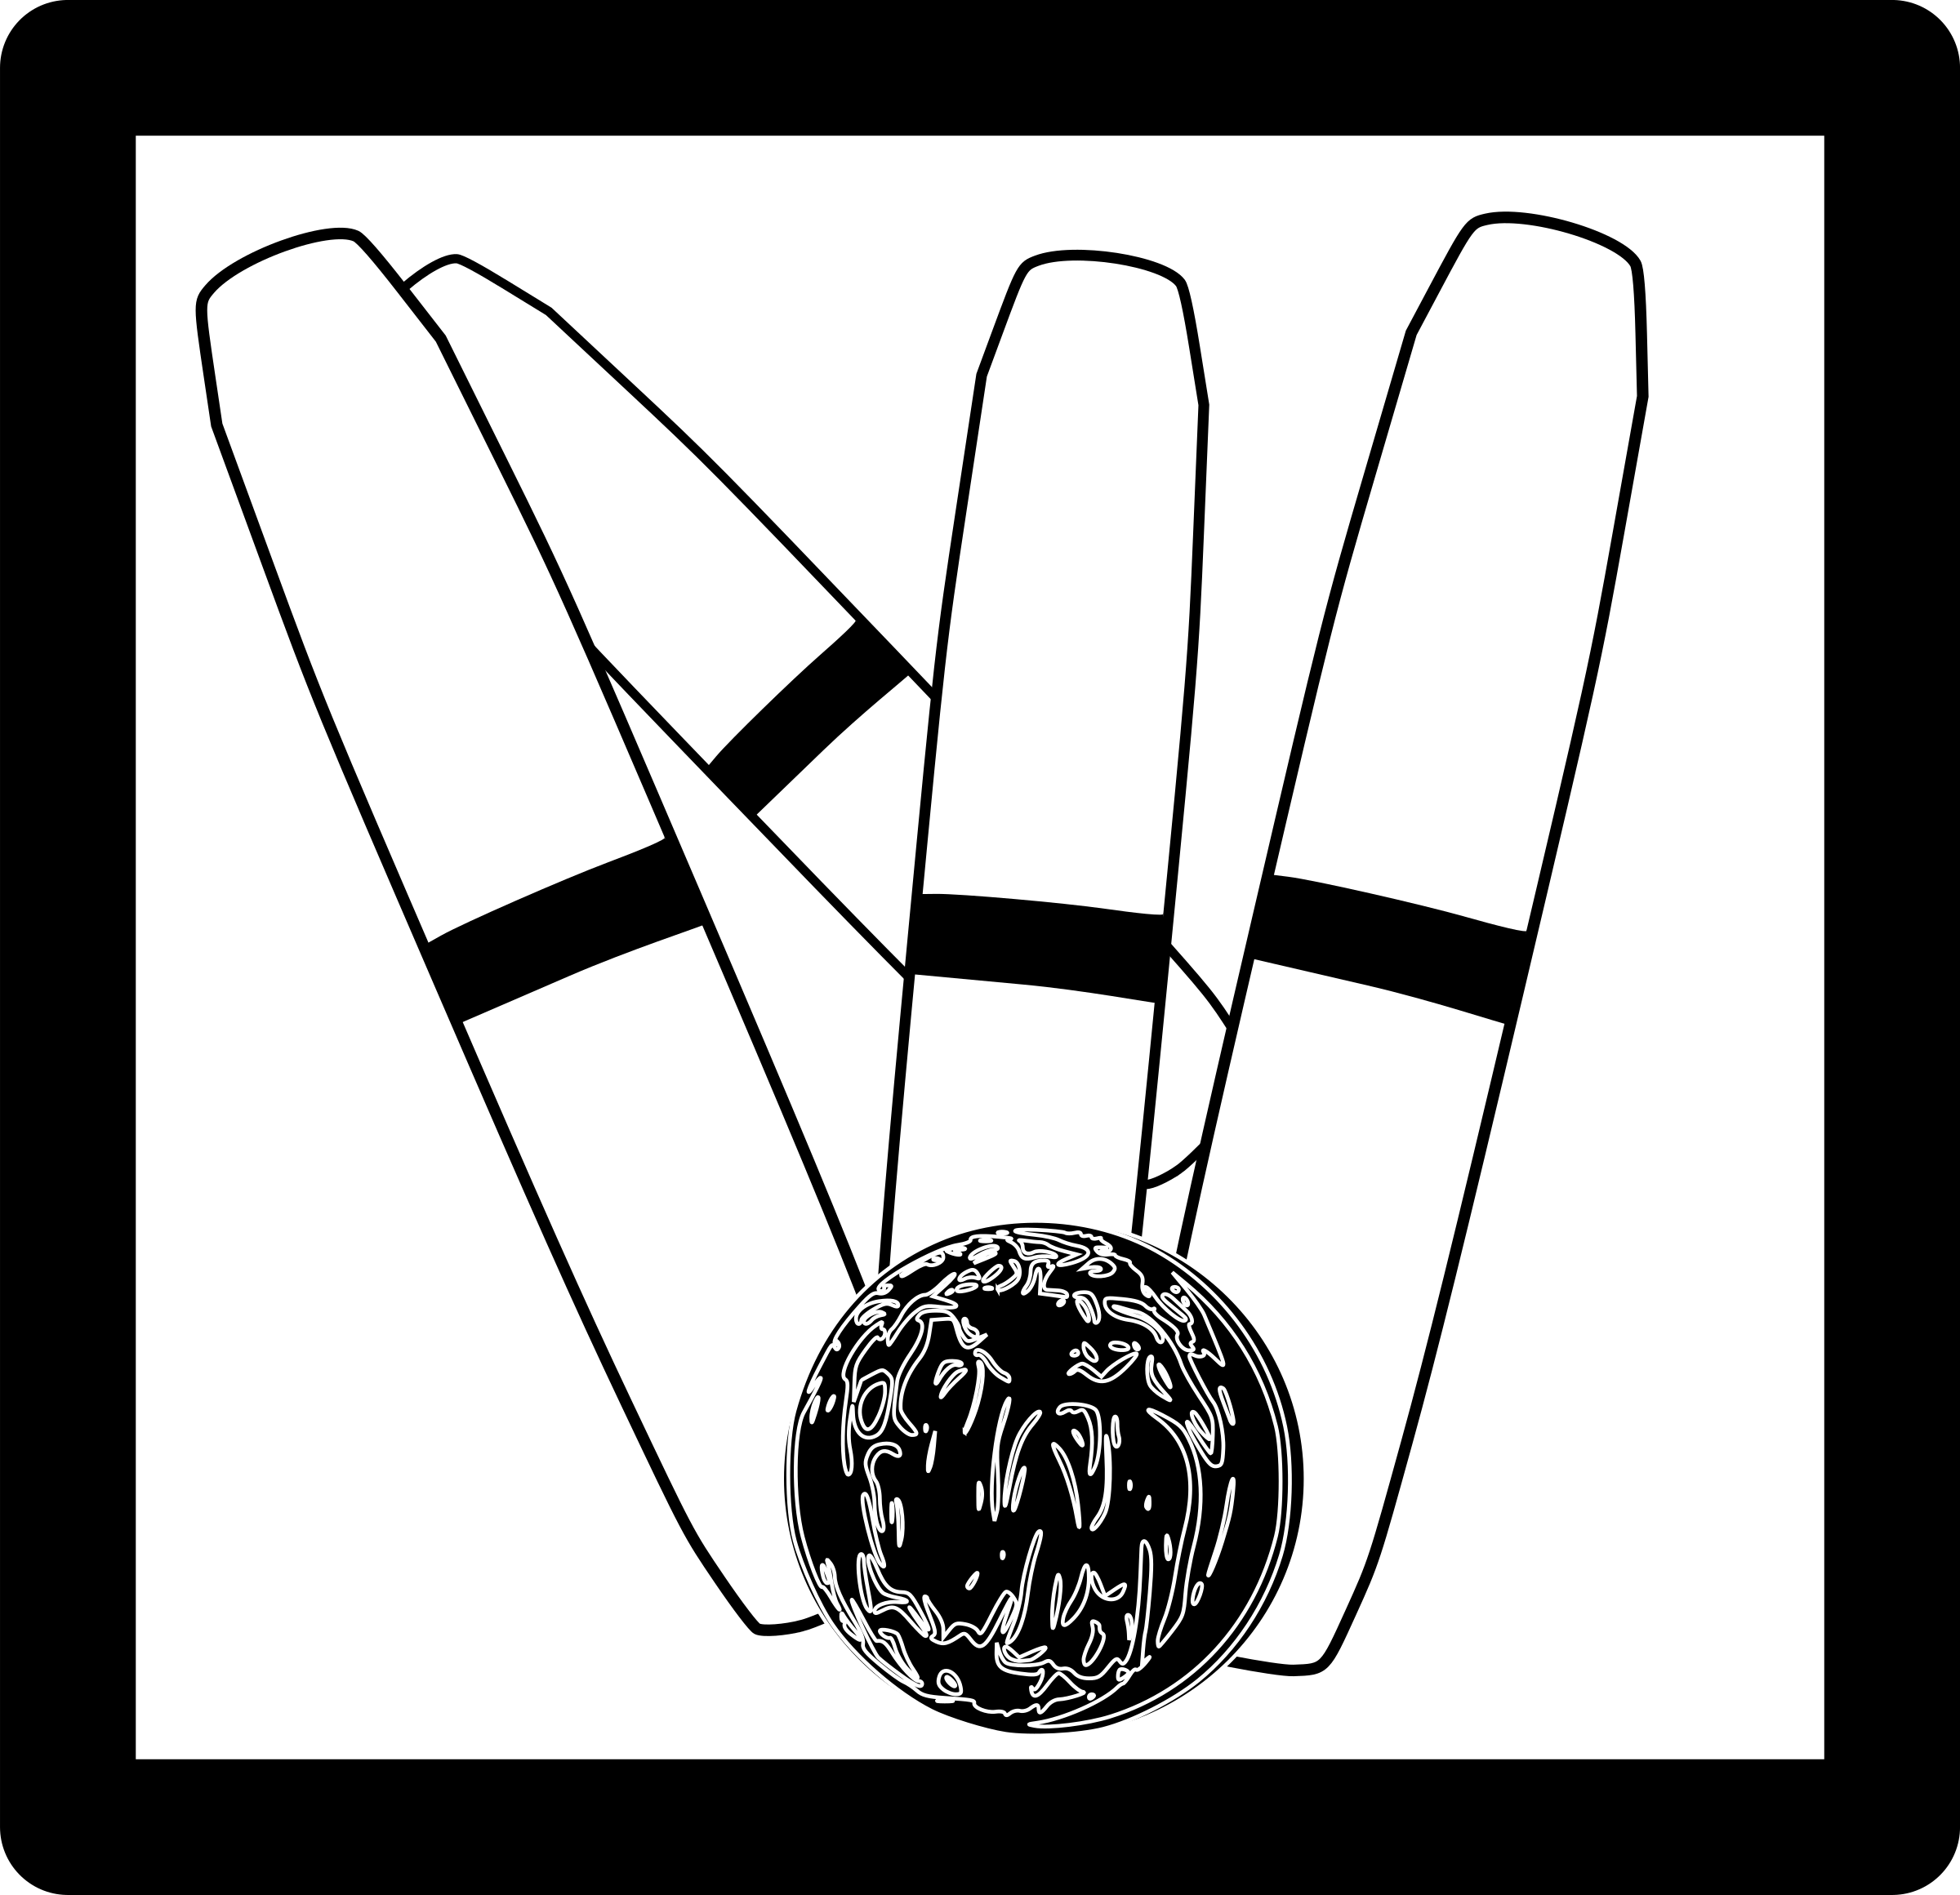 Bowling clipart candlepin bowling. Icon big image png